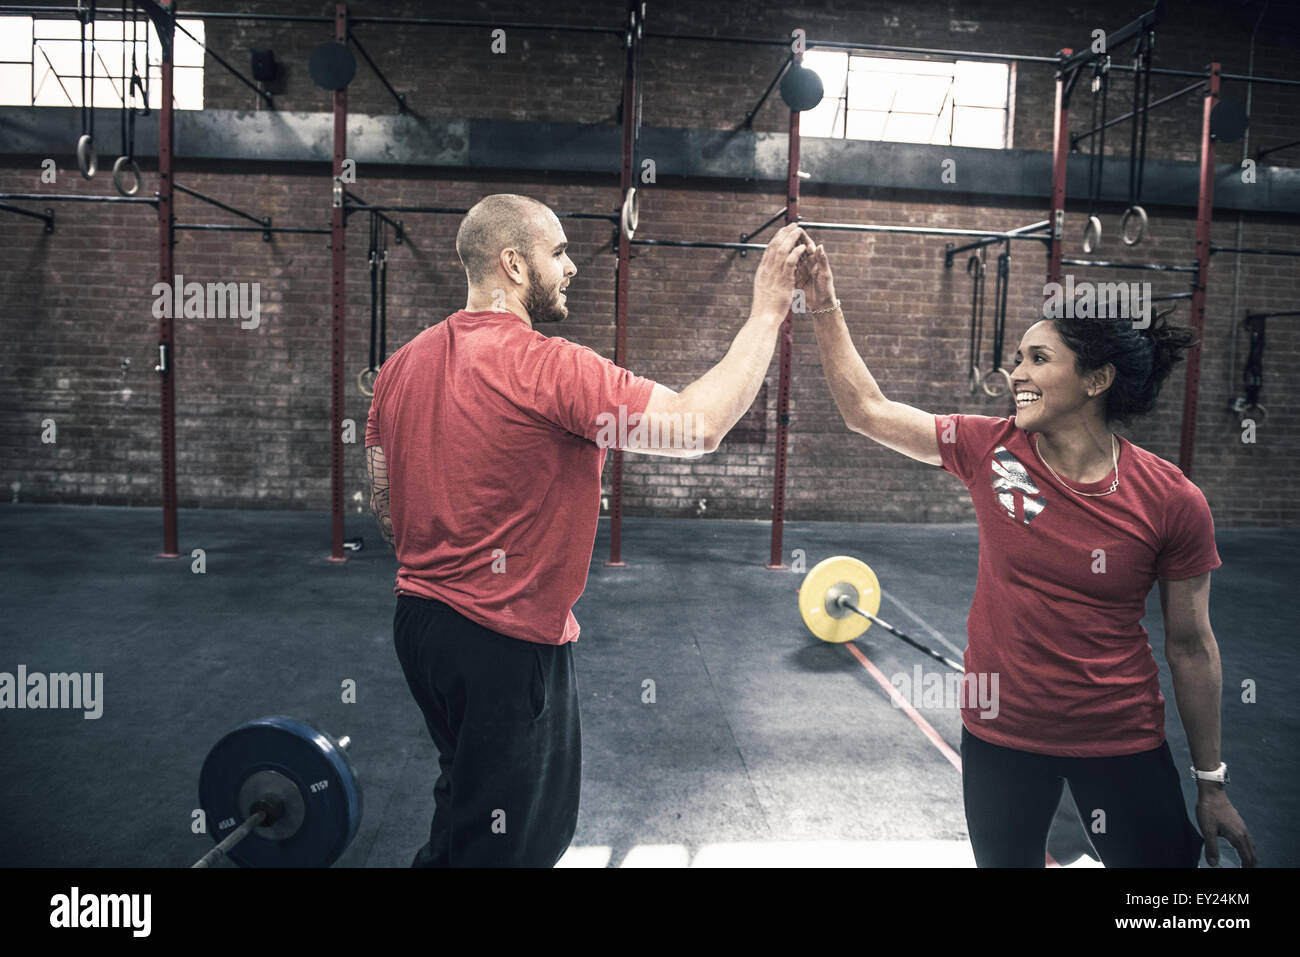 Young man and woman giving each other high five in gym - Stock Image